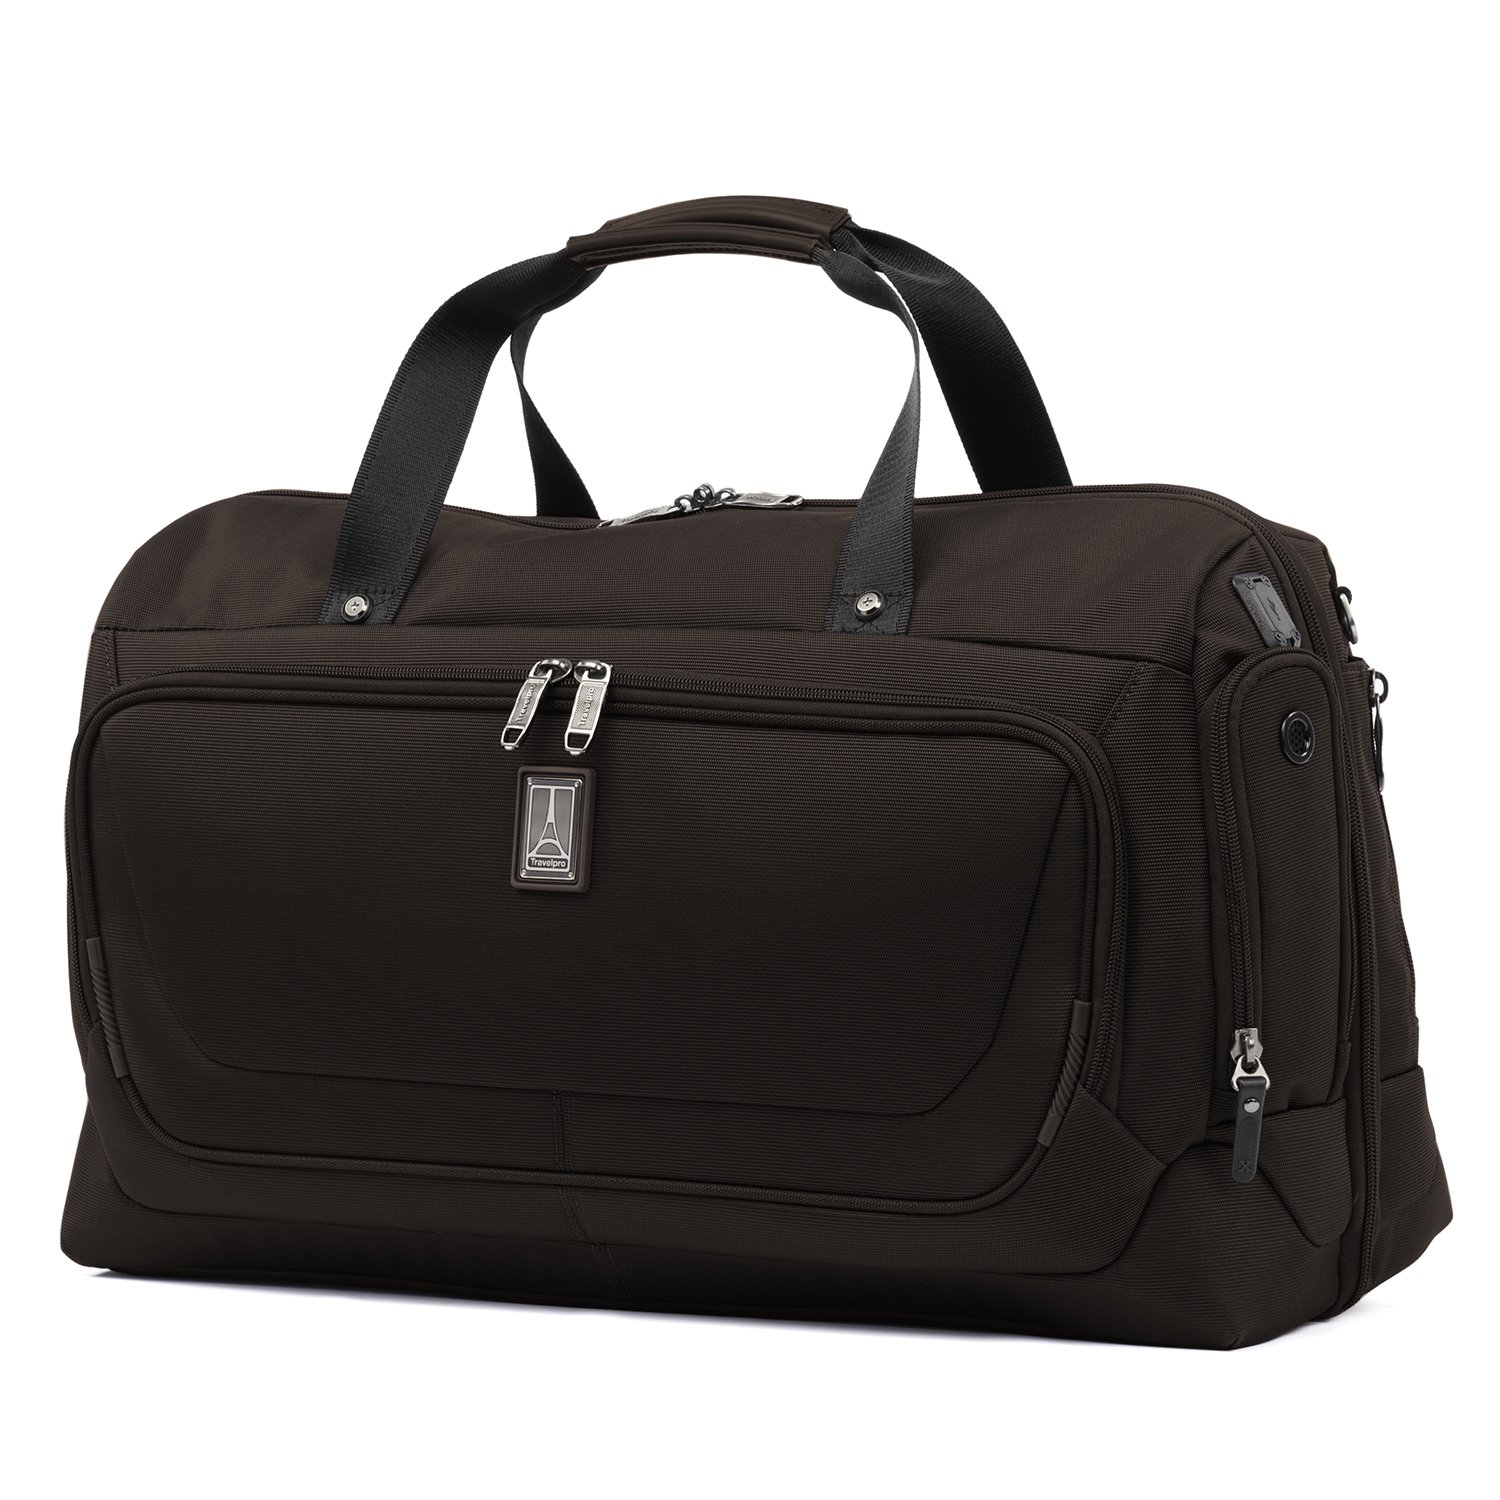 Travelpro Crew 11 Carry-on Smart Duffel, Mahogany Brown